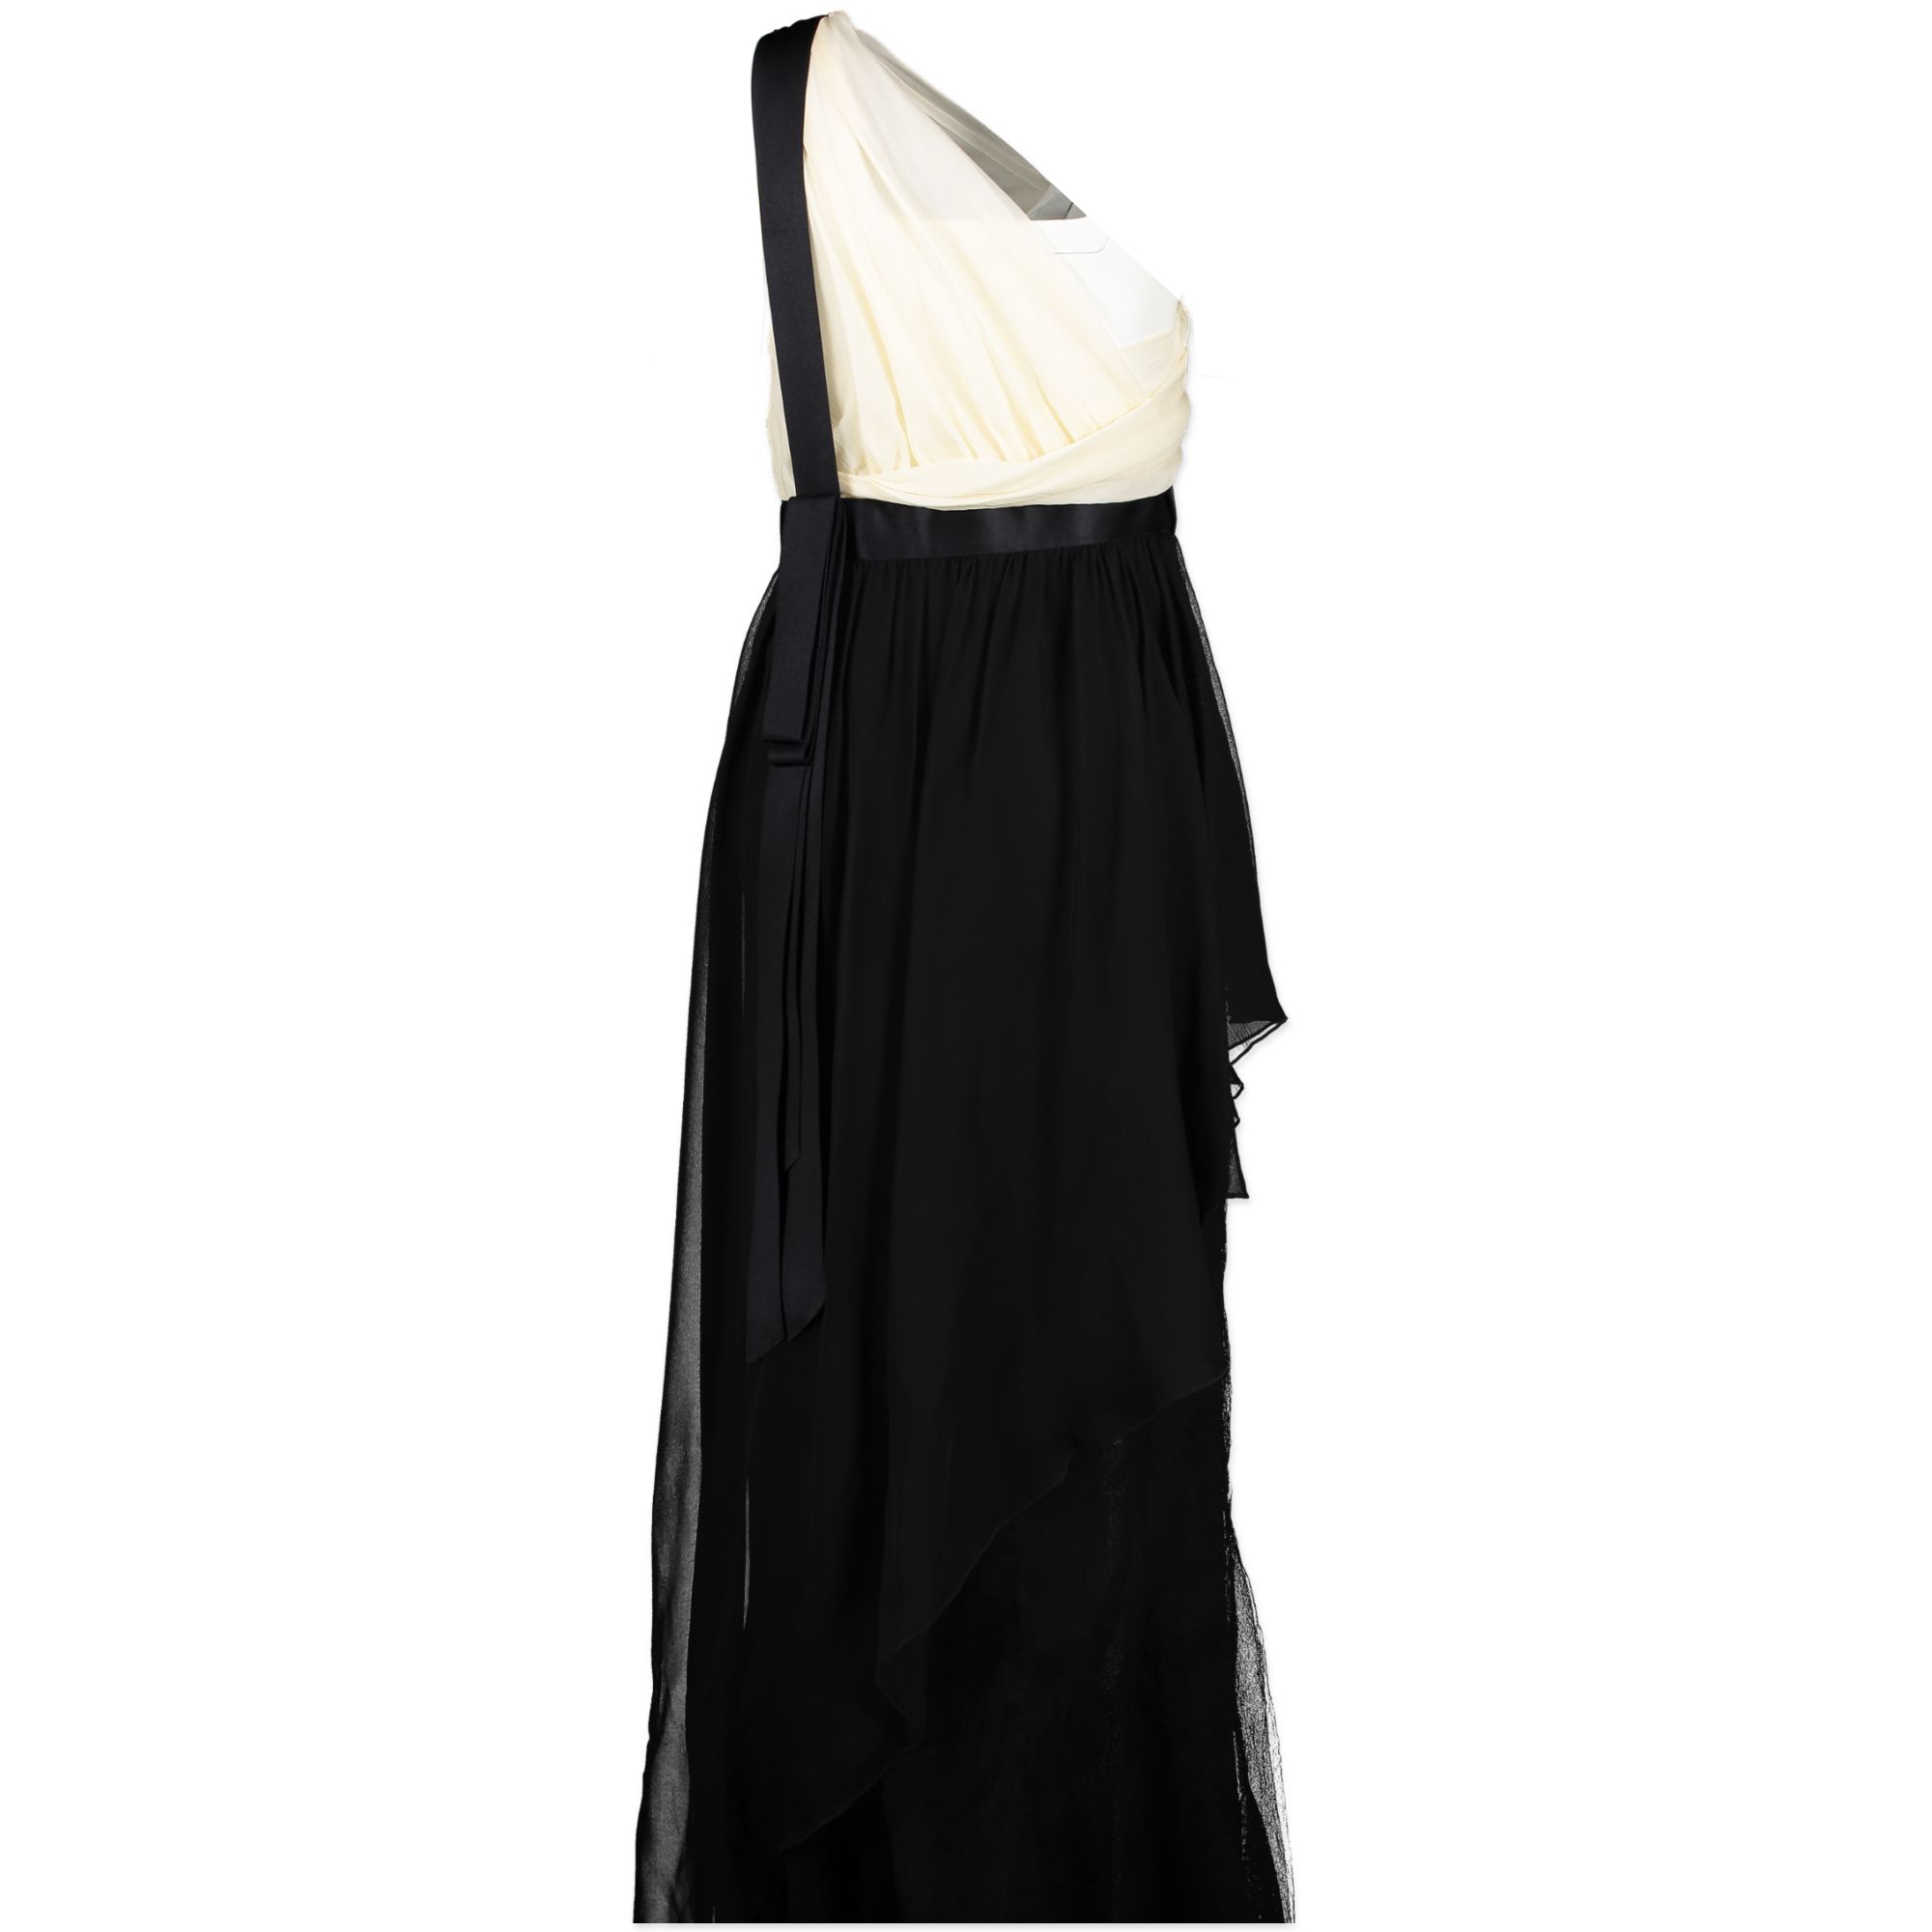 Chanel Black and White One Shoulder Silk Dress - Size 36